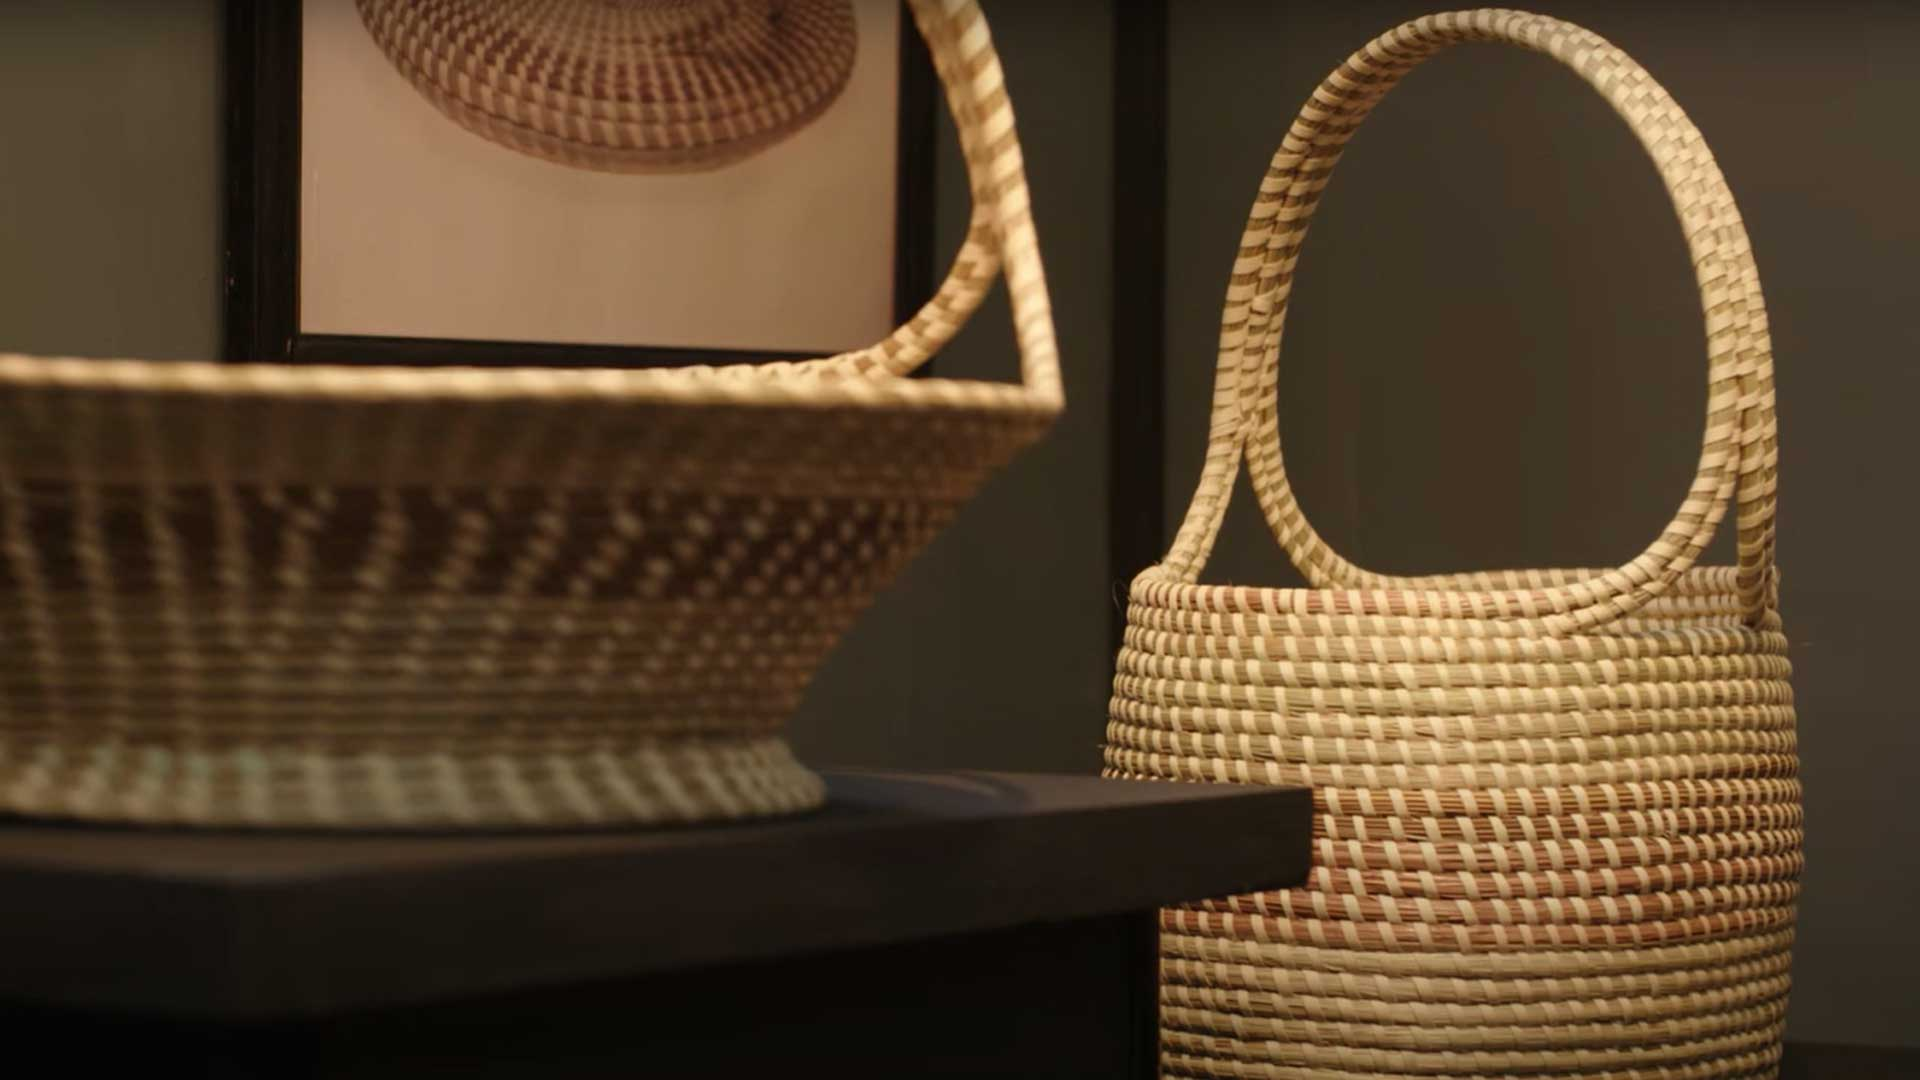 Artist Mary Jackson created these baskets which are in the Smithsonian Collection